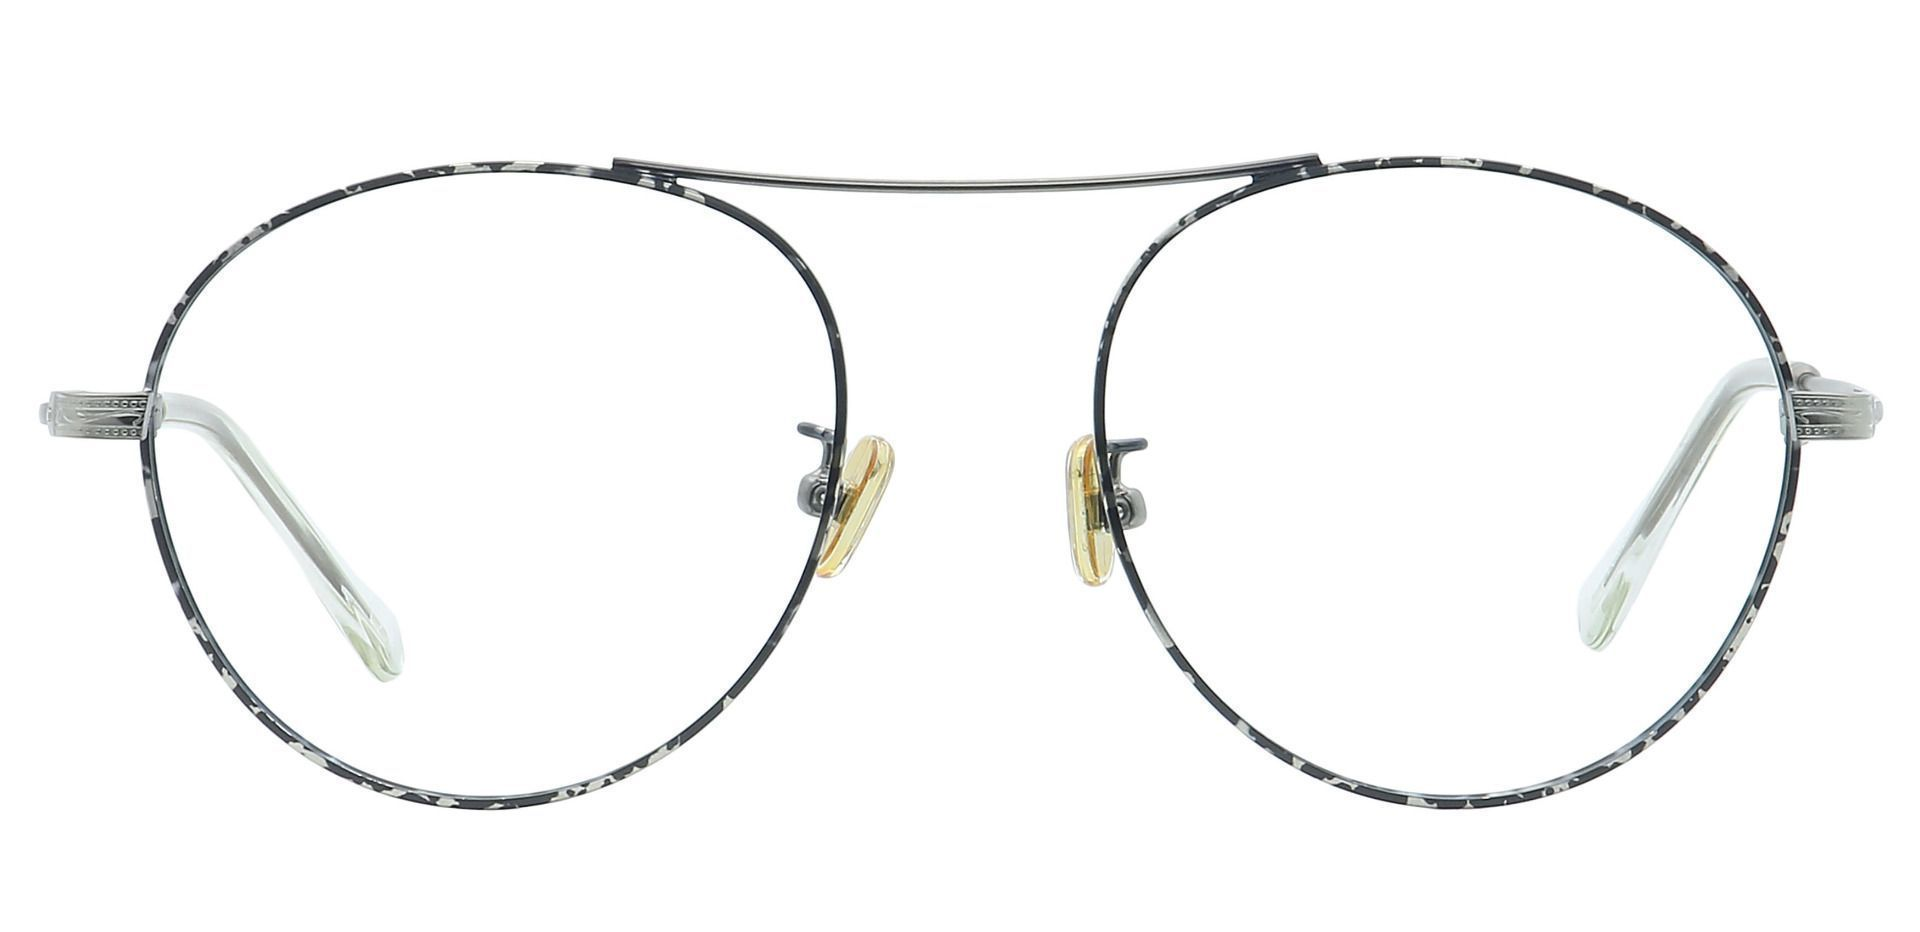 Finn Round Prescription Glasses - Gray